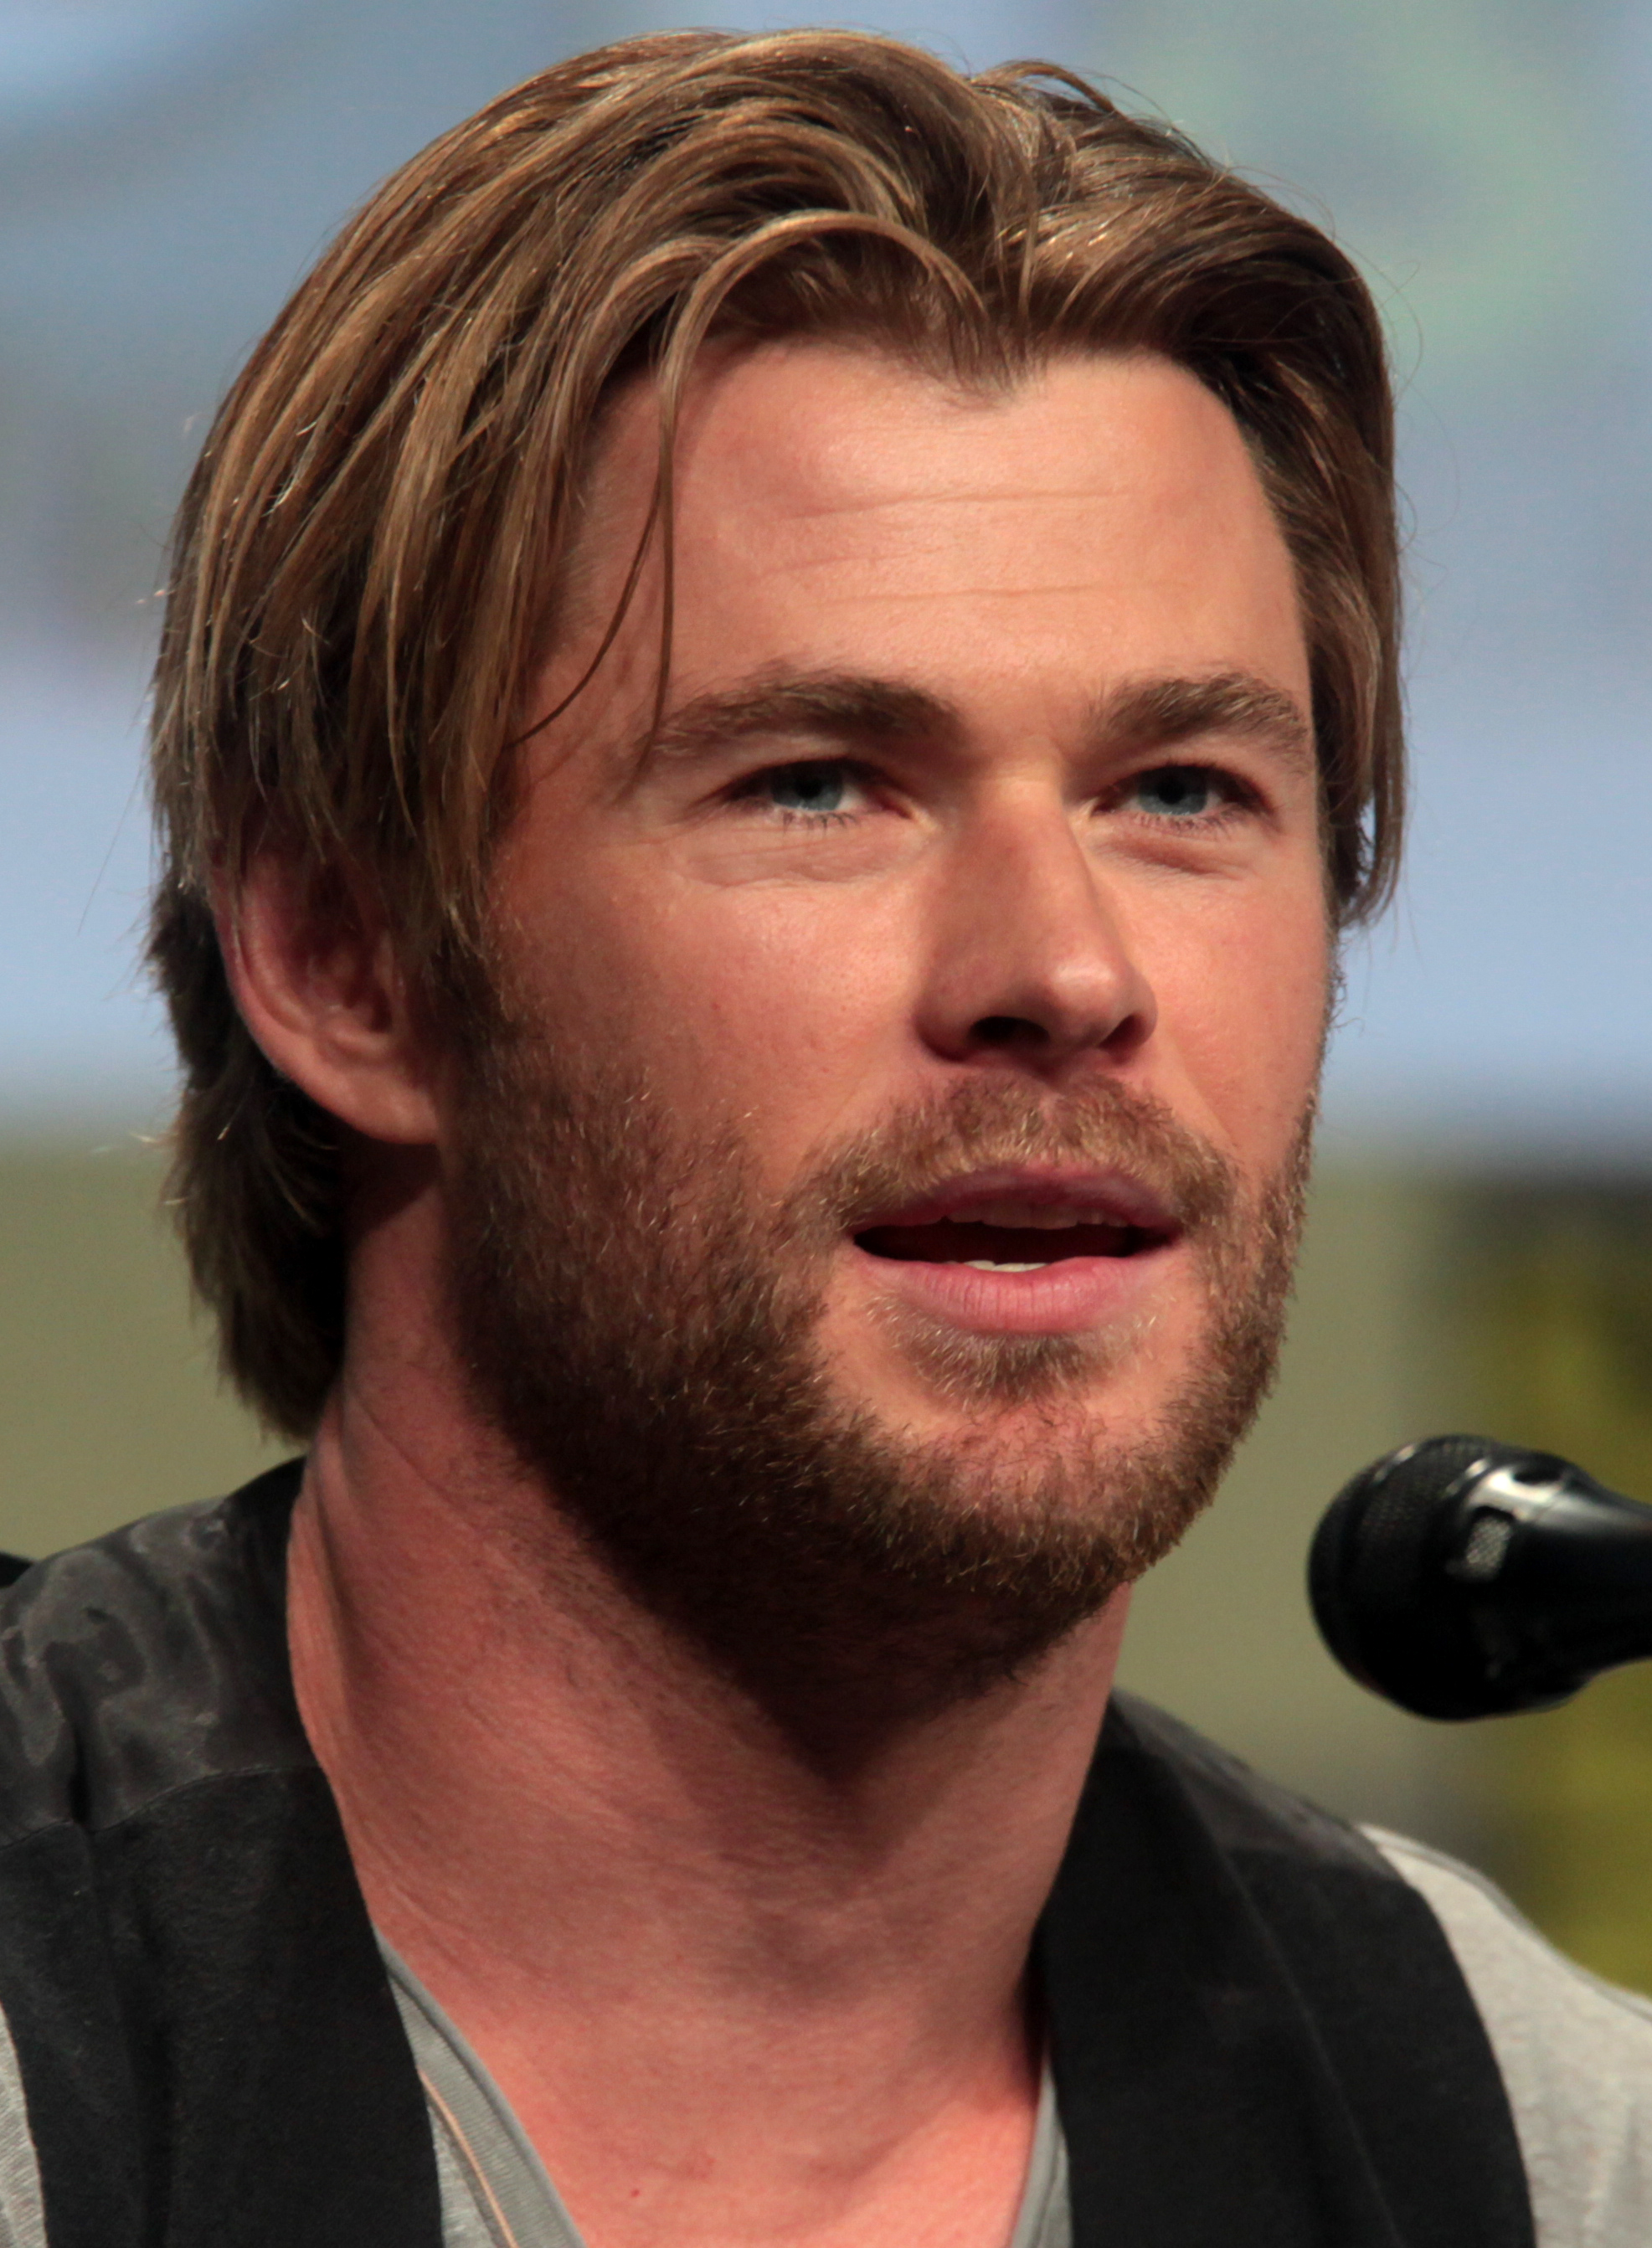 [Image: Chris_Hemsworth_SDCC_2014_(cropped).jpg]